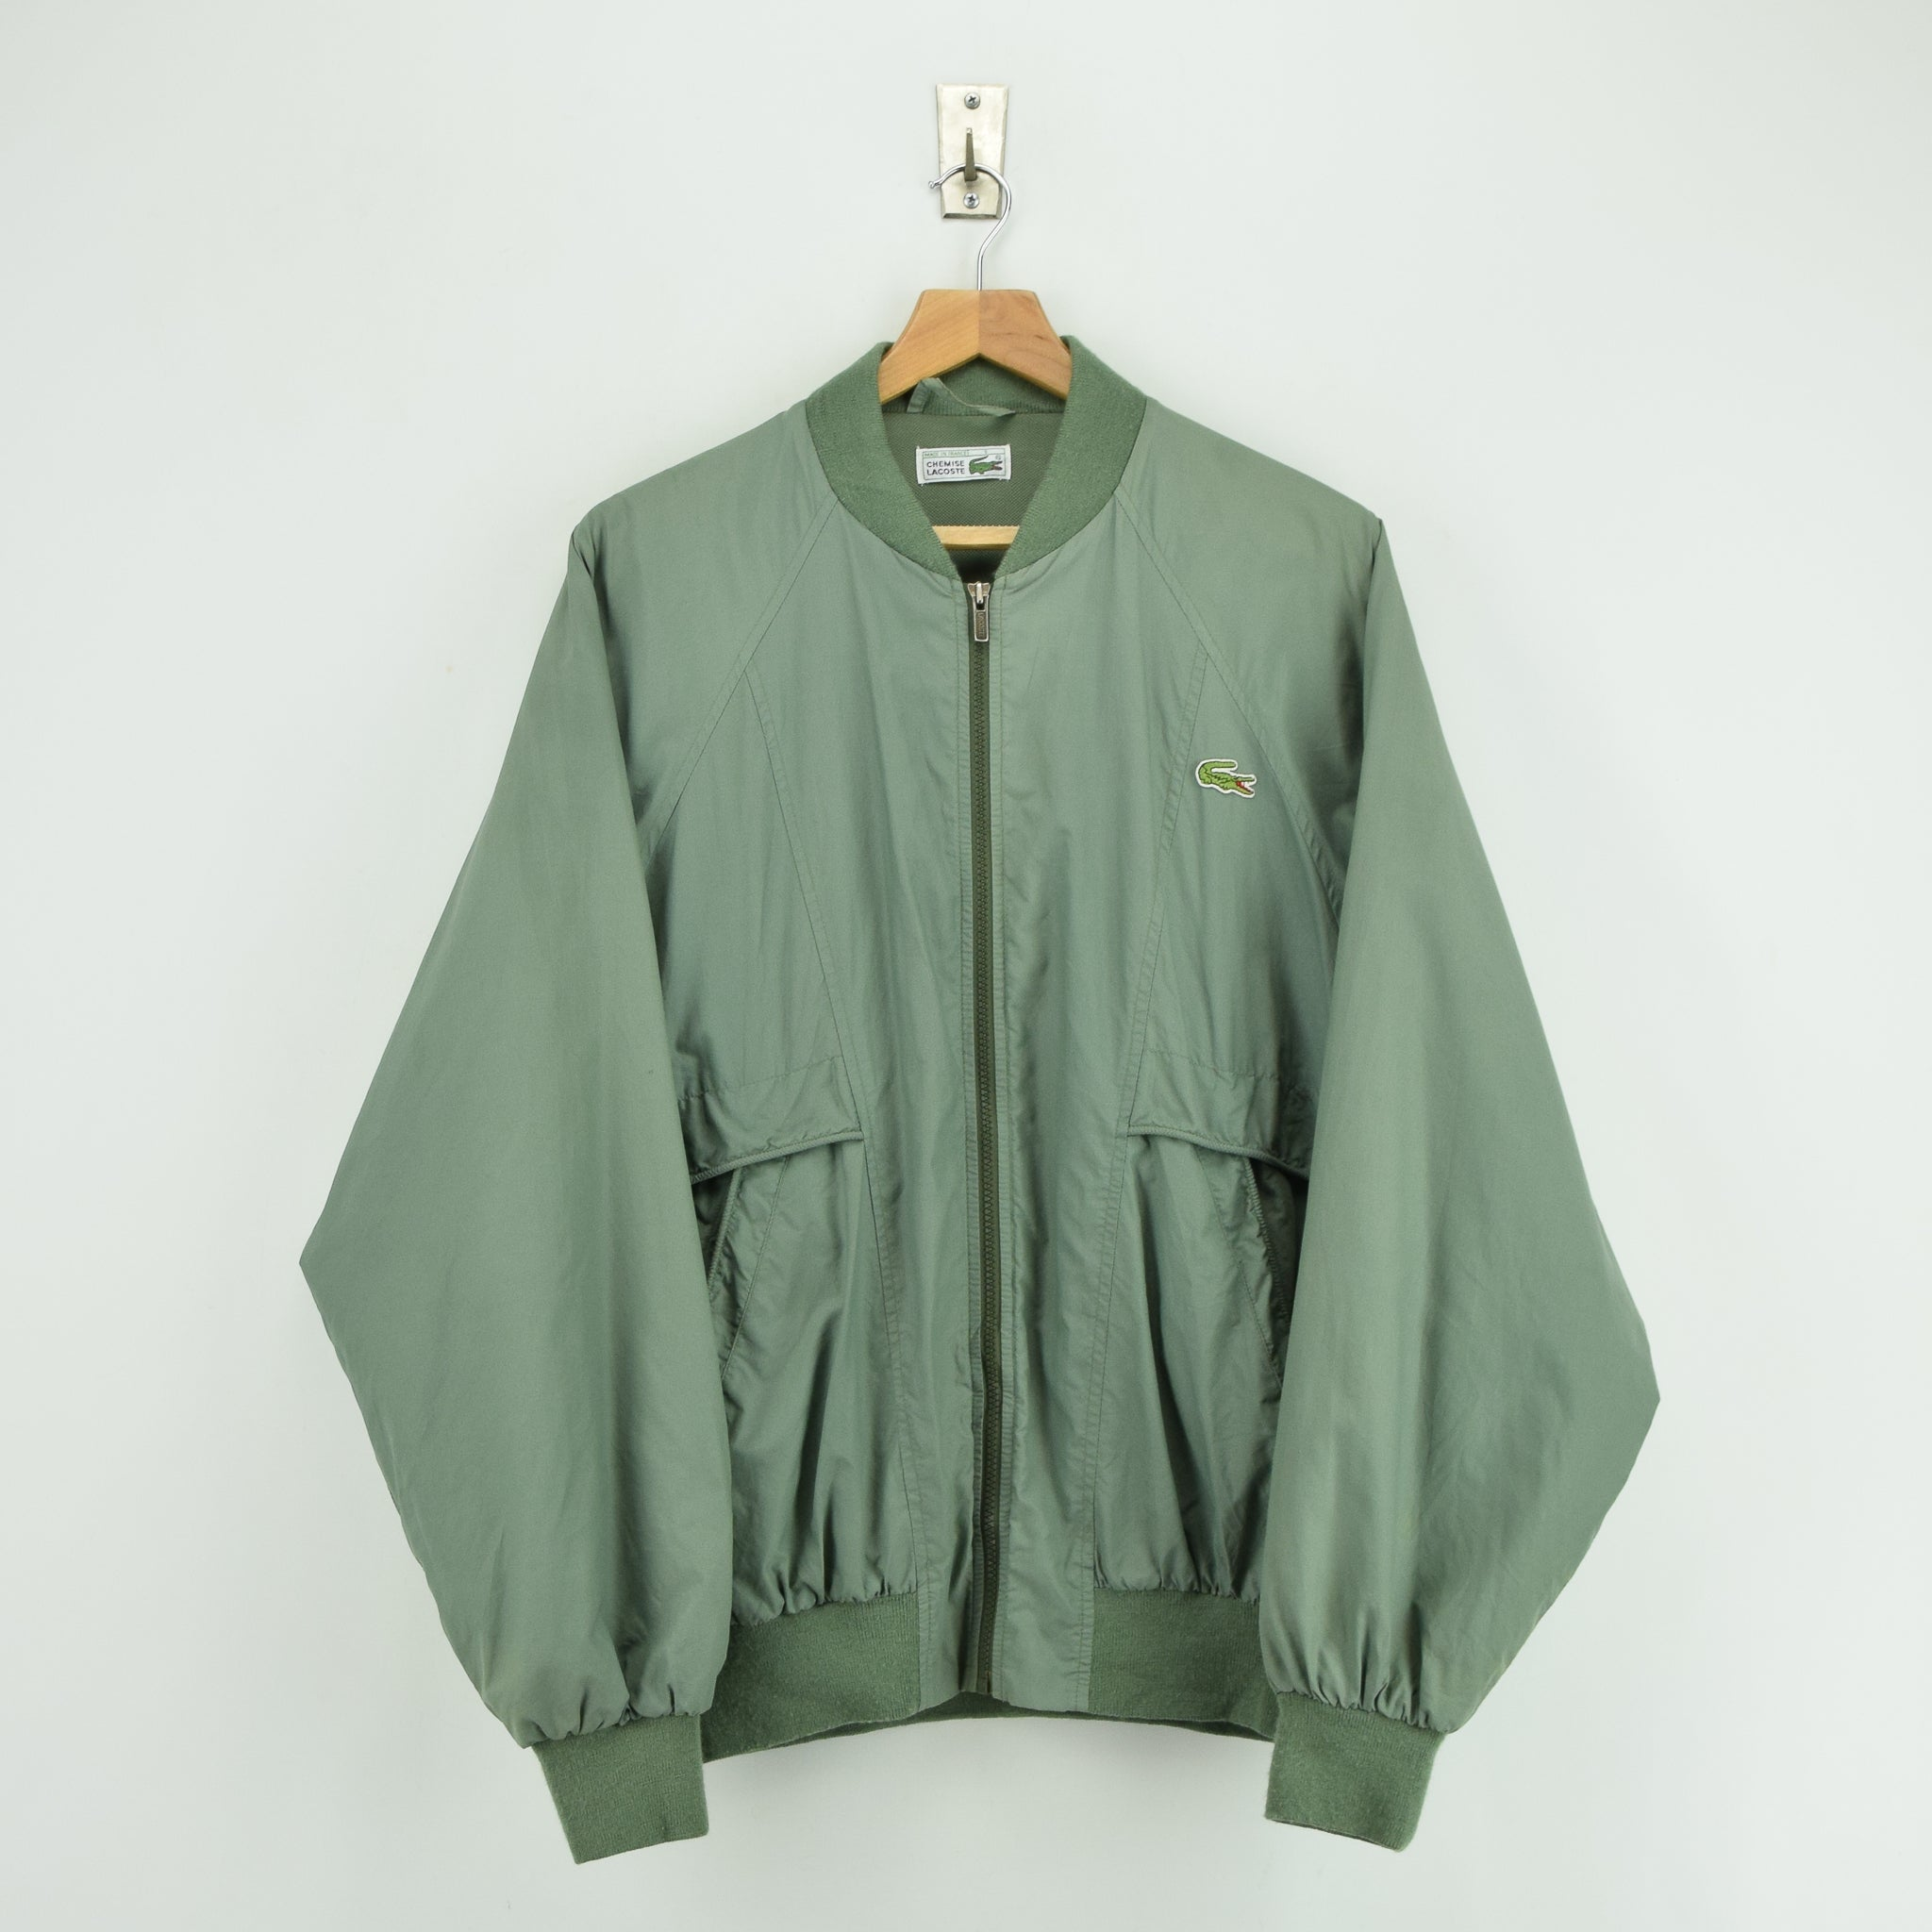 22369bb86ce7 Vintage Chemise Lacoste Green Bomber Jacket Made in France L   XL front ...